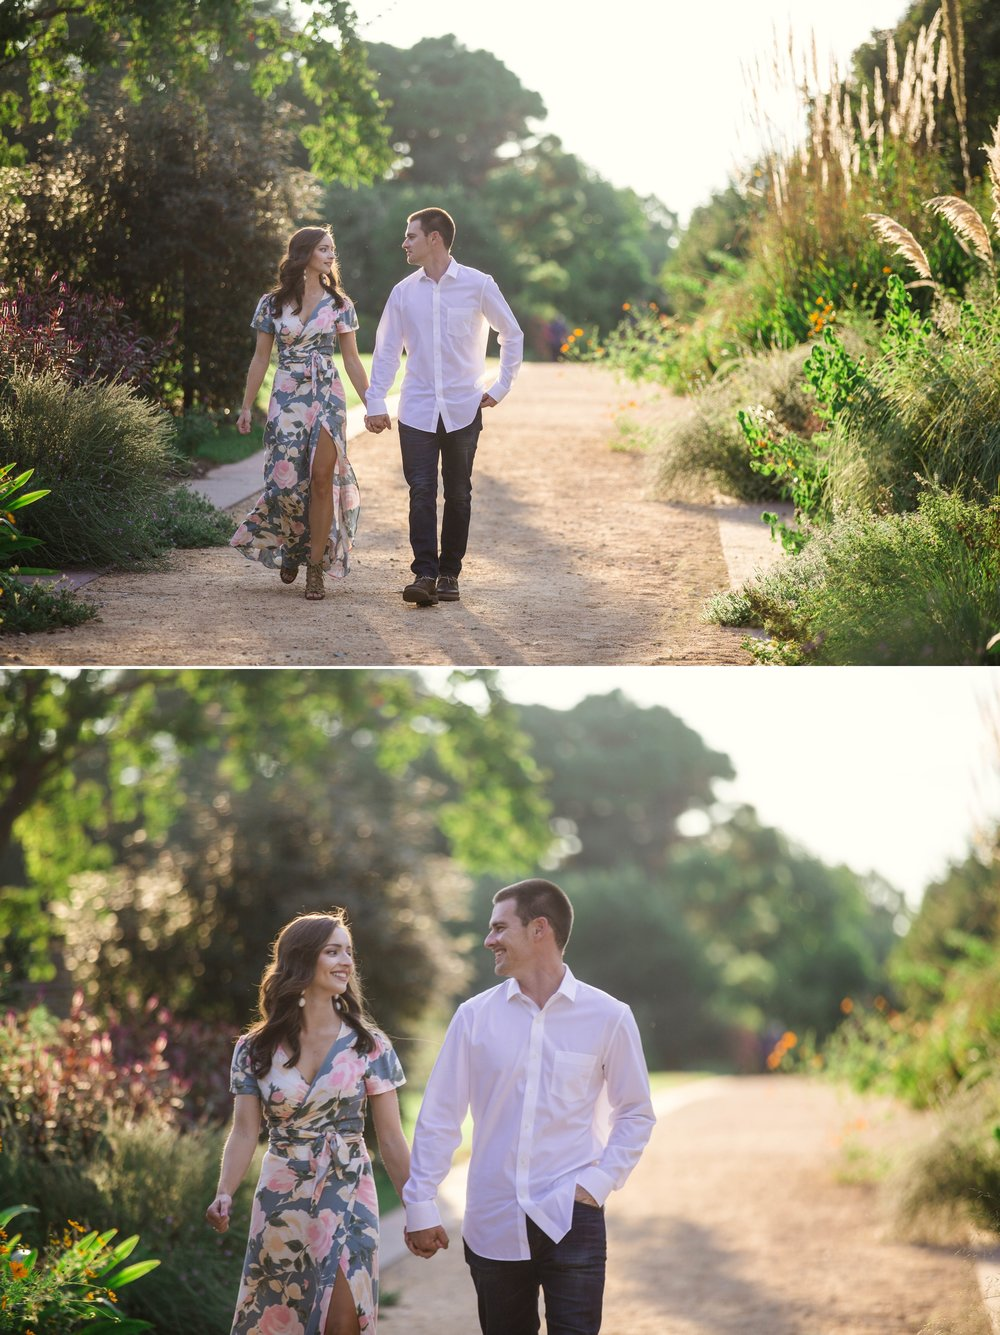 Paige + Tyler - Engagement Photography Session at the JC Raulston Arboretum - Raleigh Wedding Photographer 2.jpg